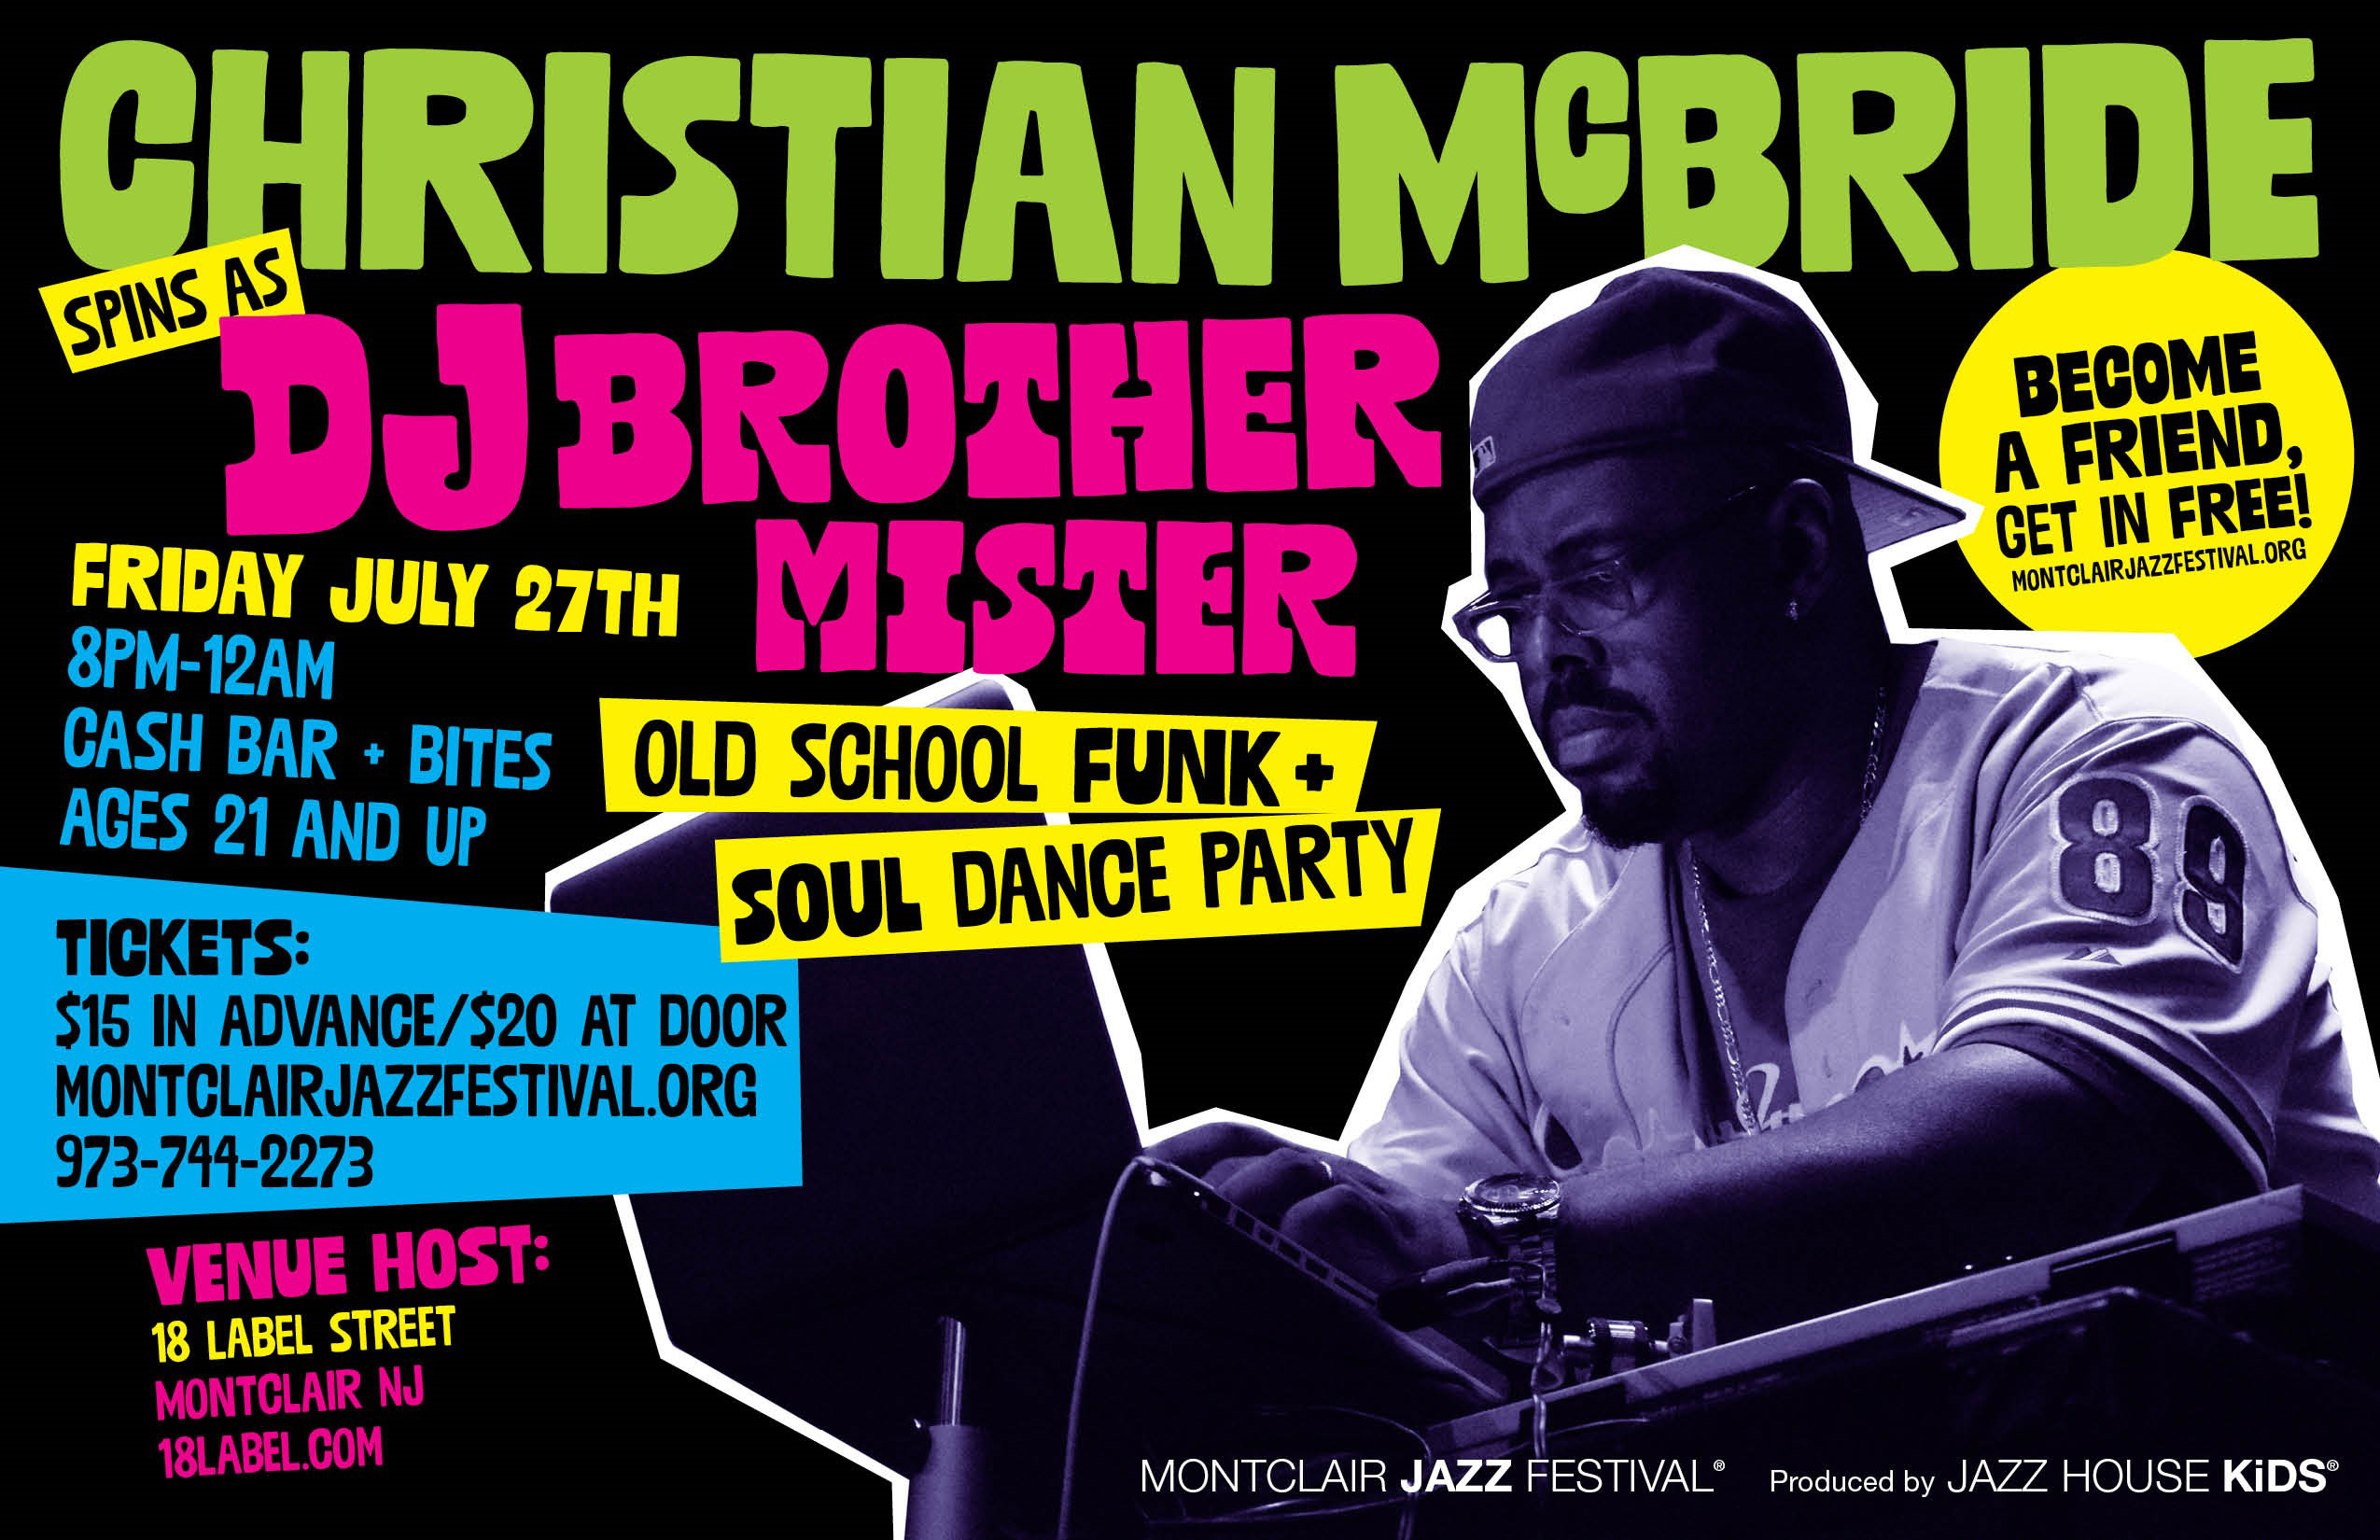 Dj Brother Mister spins July 27th